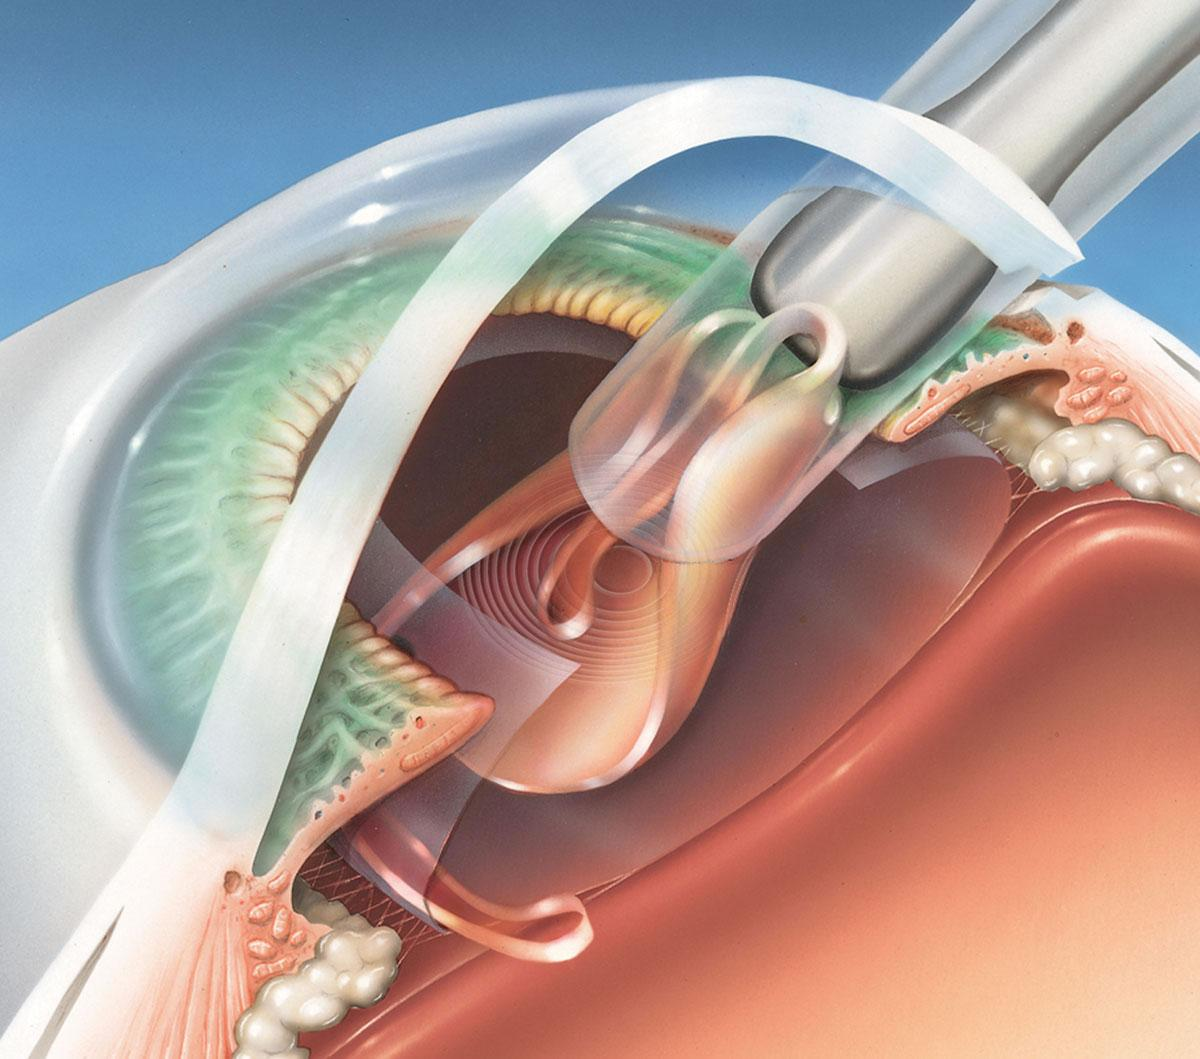 Day of Cataract Surgery - Ophthalmologist | Eye Doctor